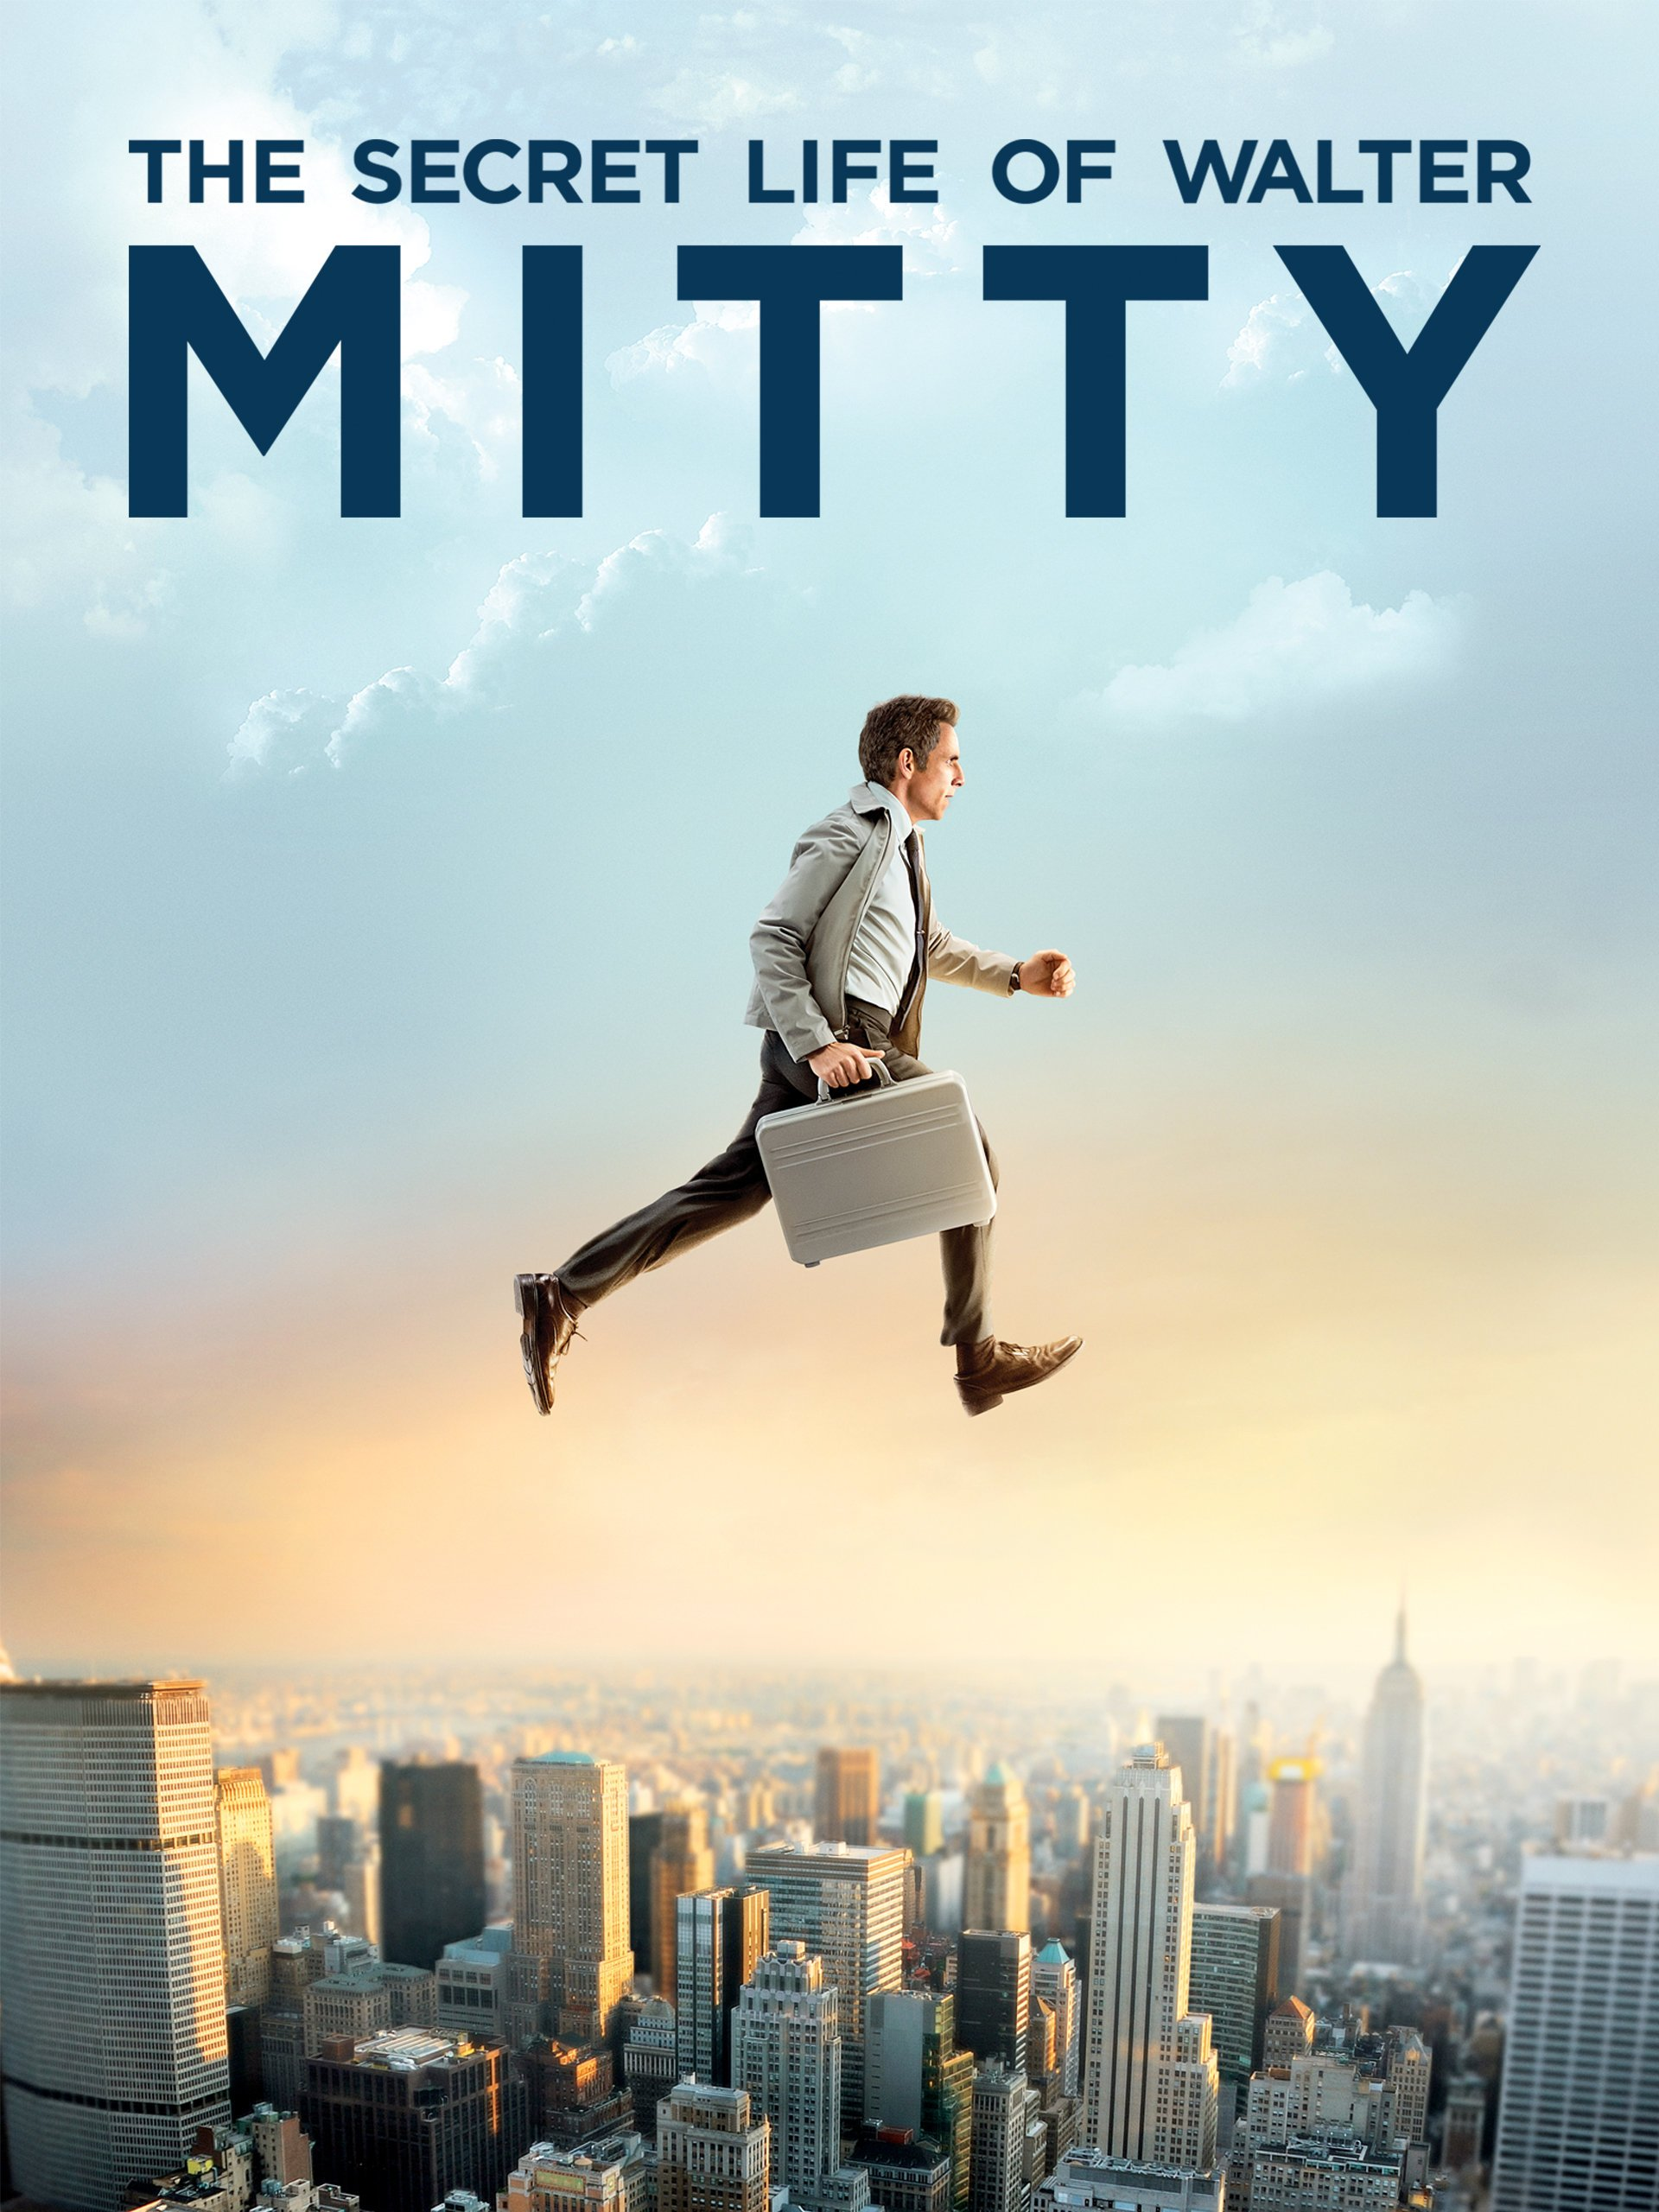 Book pdf secret mitty of the life walter